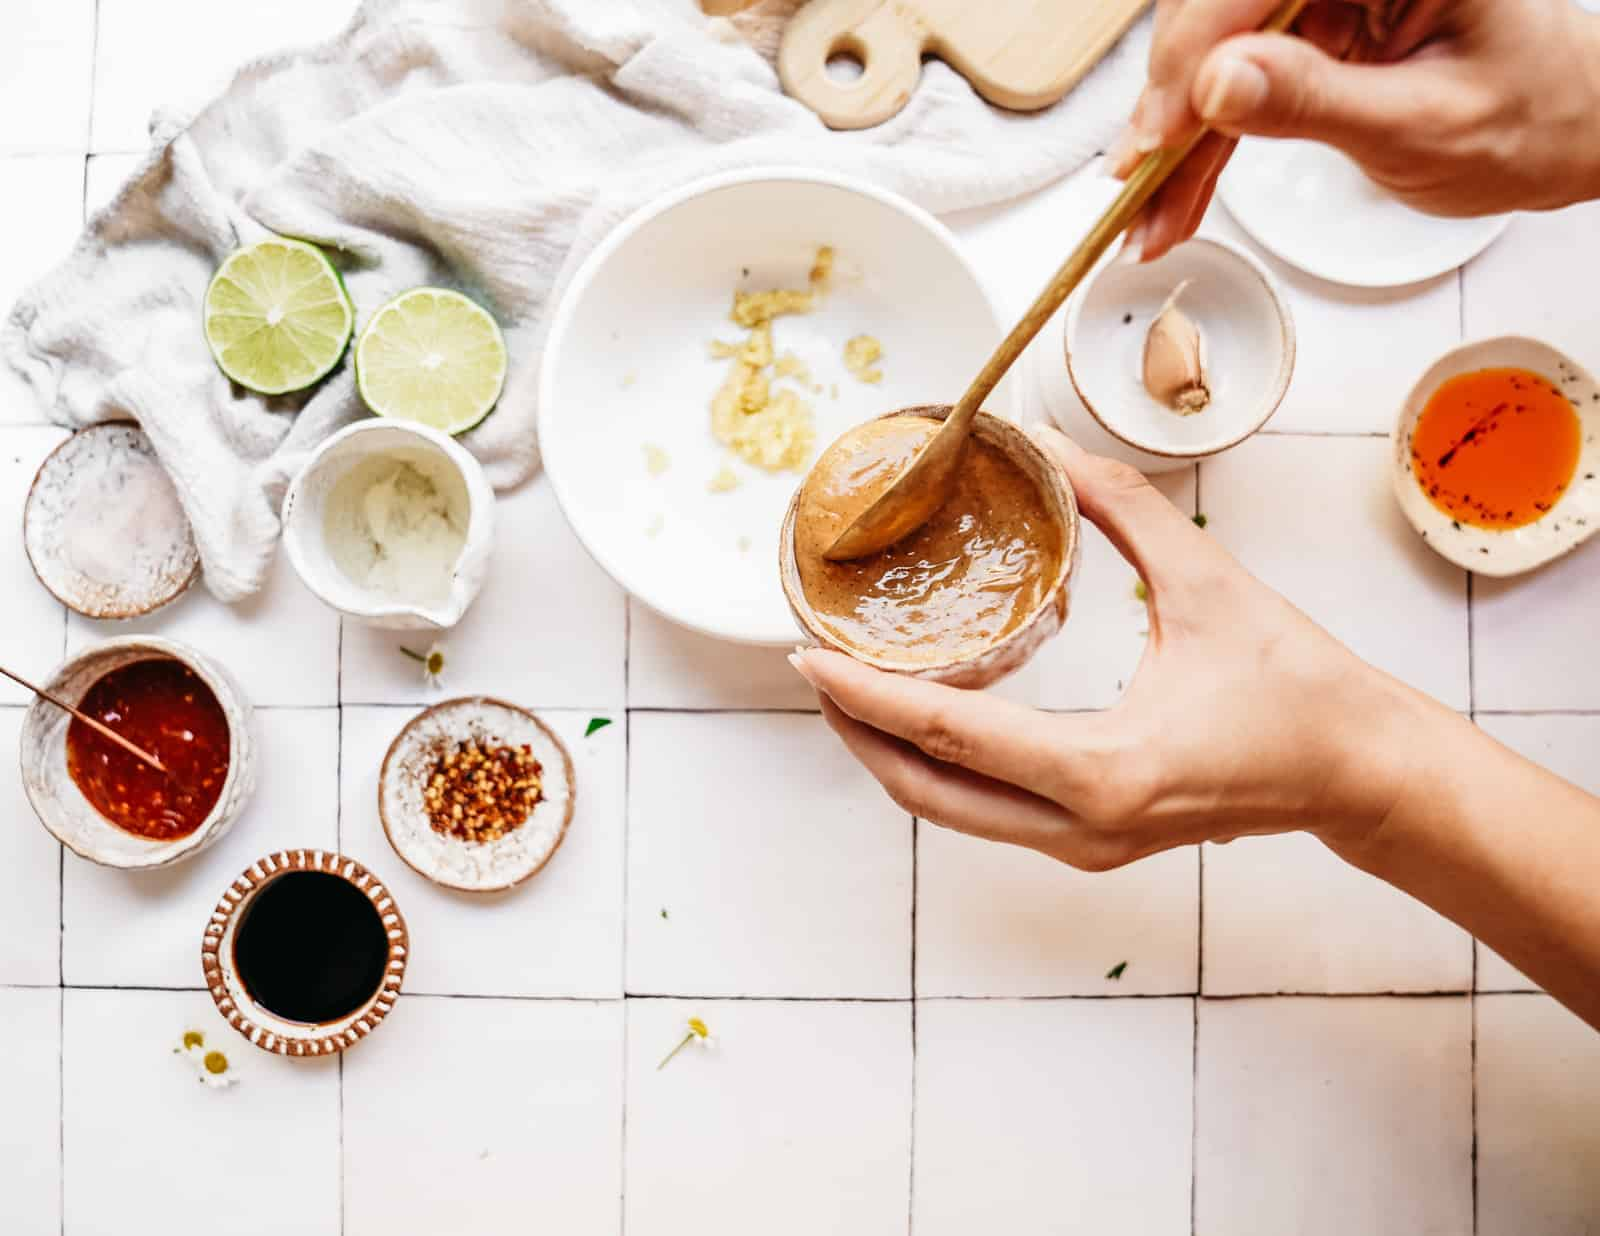 Person showing you how to make peanut sauce in a bowl on a white countertop